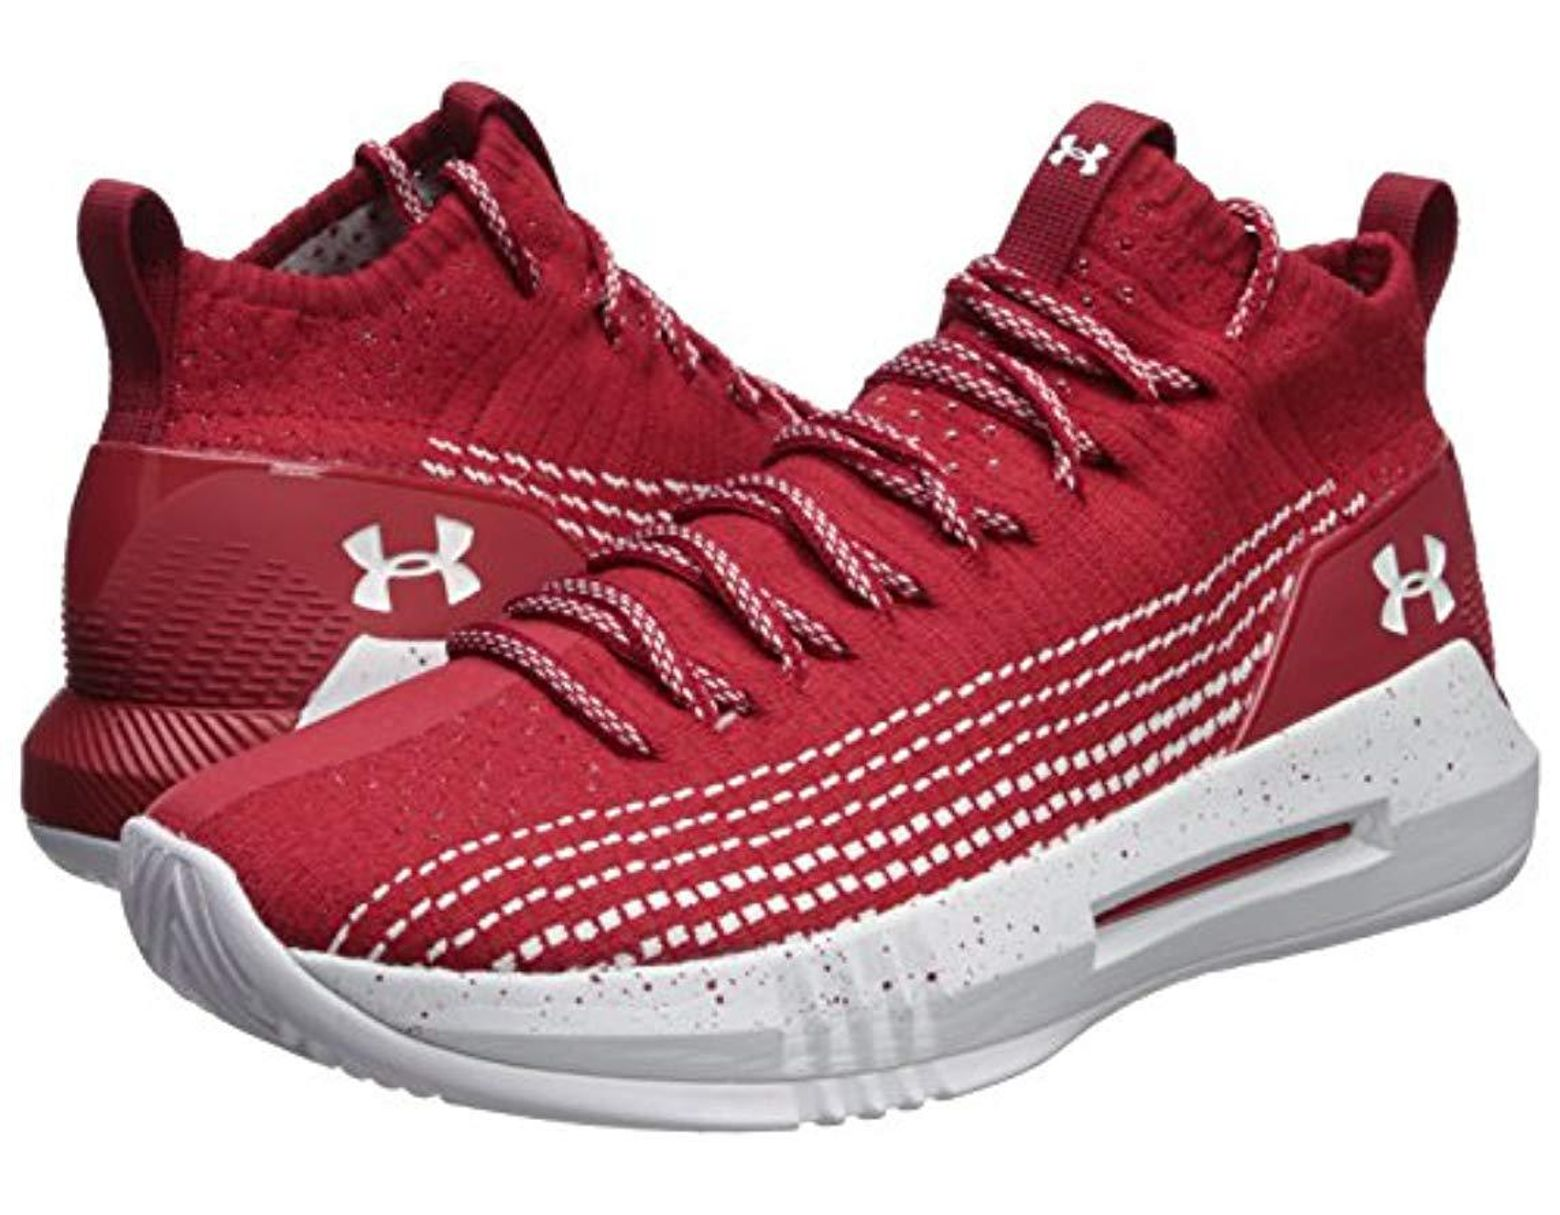 ae9ec42c597 Under Armour Heat Seeker Basketball Shoe in Red for Men - Save 40% - Lyst